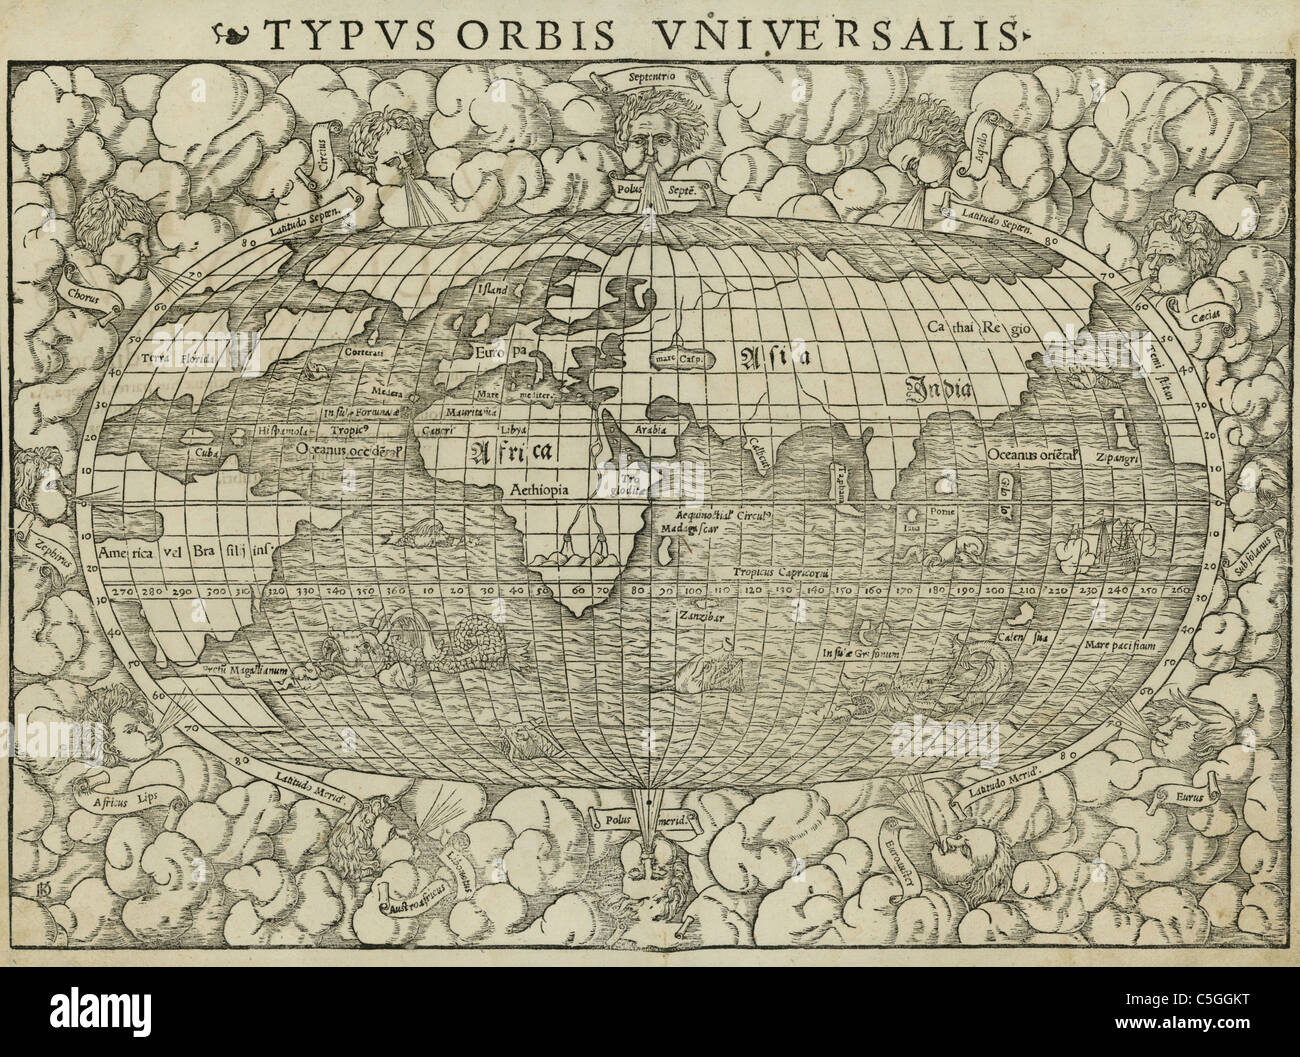 Old world map stock photos old world map stock images alamy antiquarian world map stock image gumiabroncs Image collections